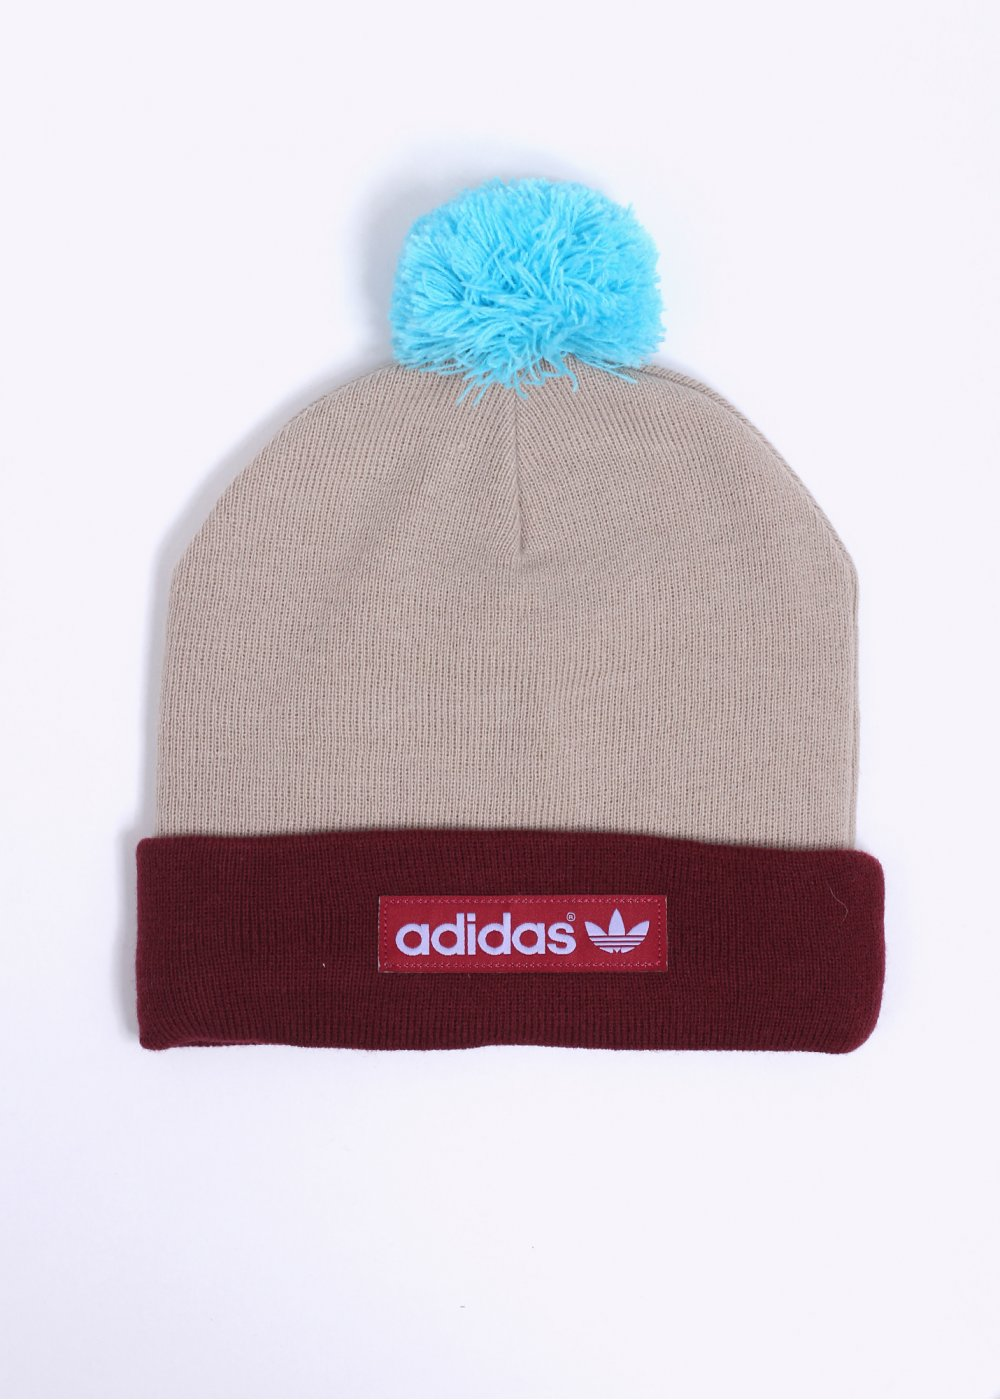 adidas Originals Logo Bobble Hat - Burgundy   Brown 2b41822e2ae